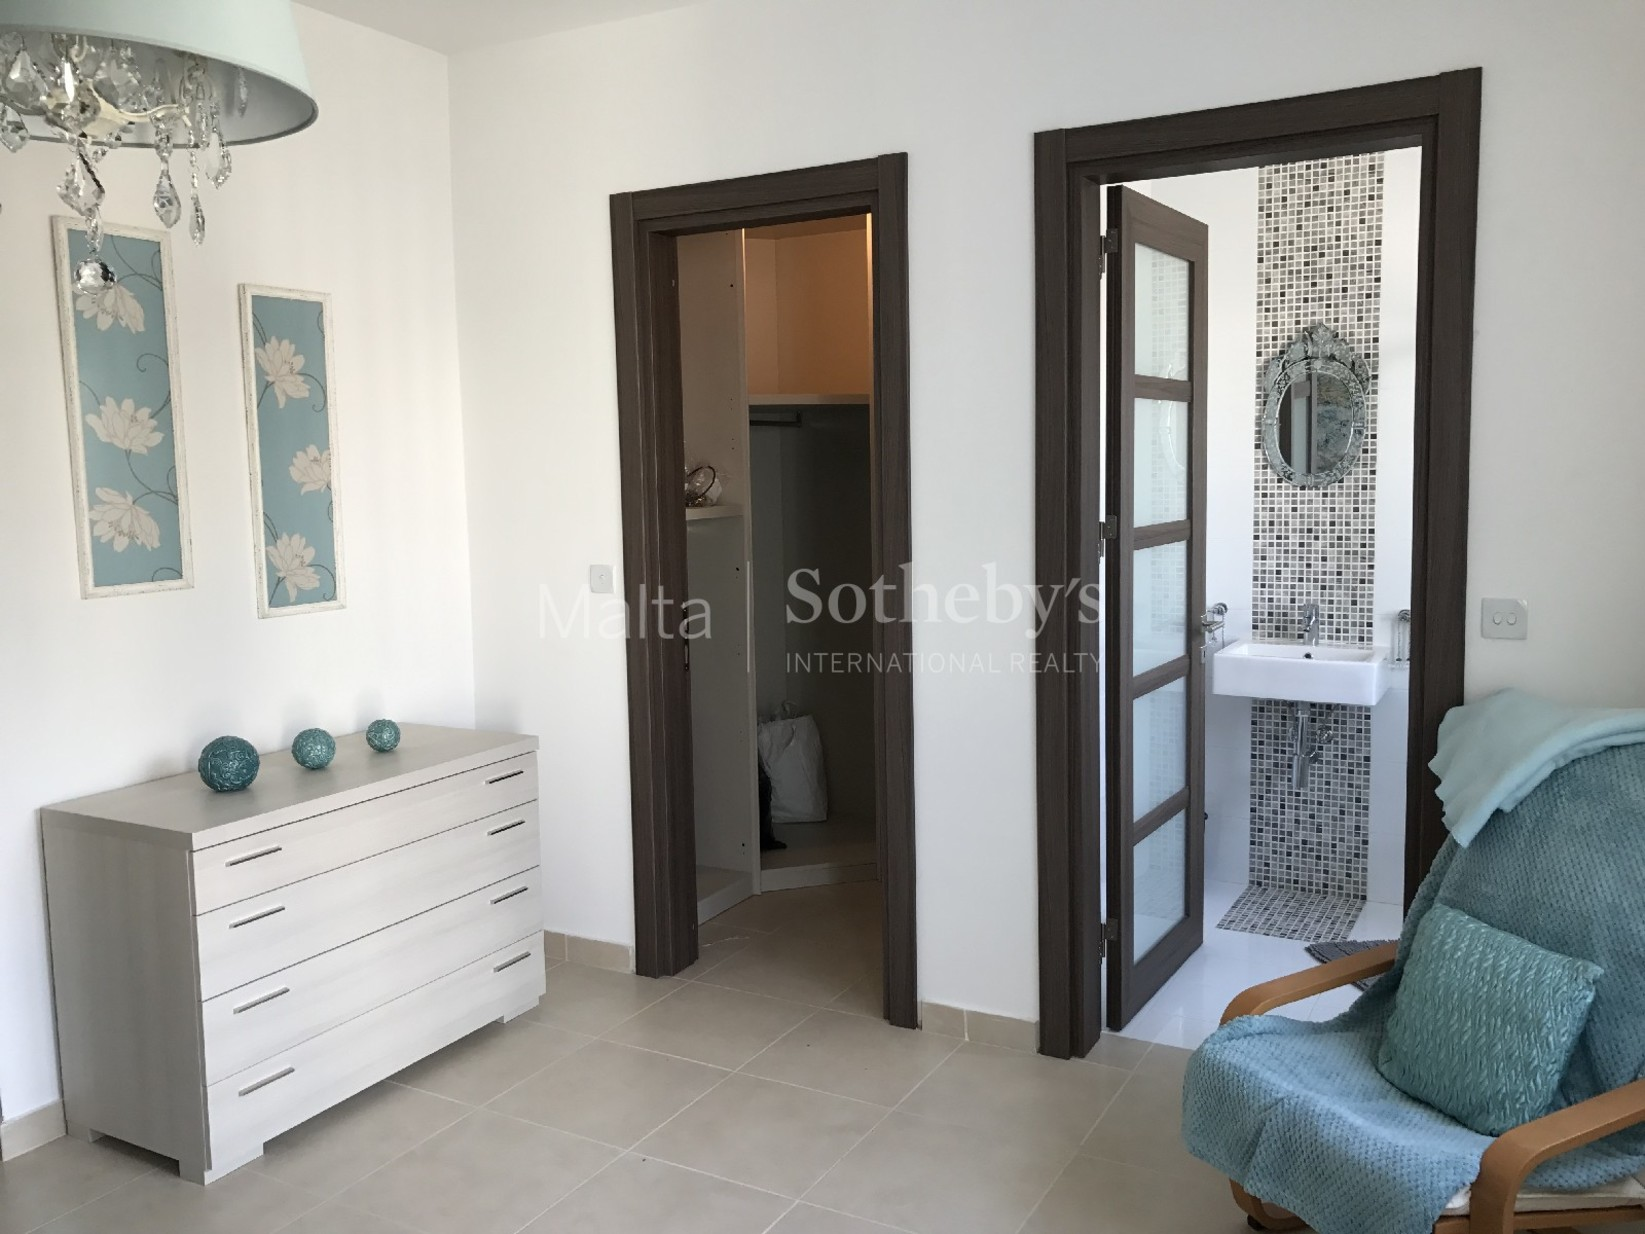 3 bed Apartment For Rent in St Julian's, St Julian's - thumb 21